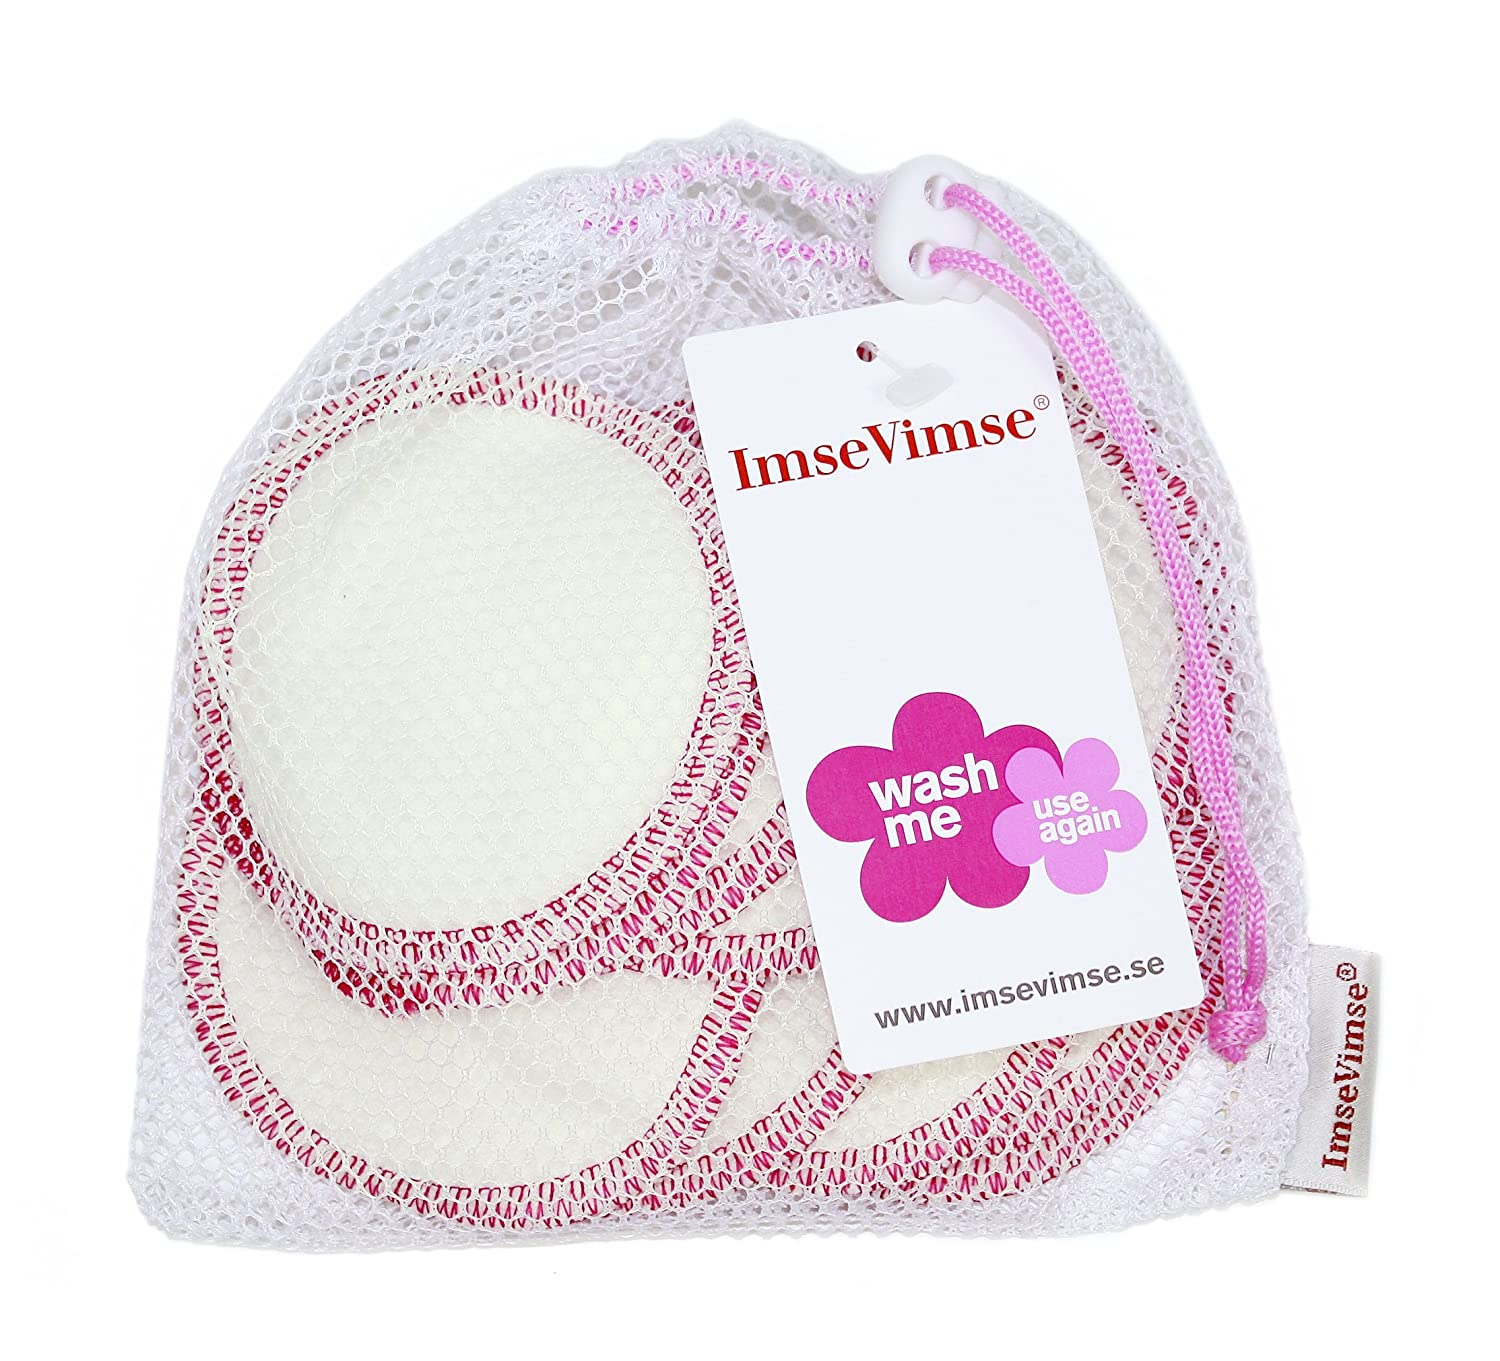 ImseVimse Washable Make-Up Removal Pads by ImseVimse 1805